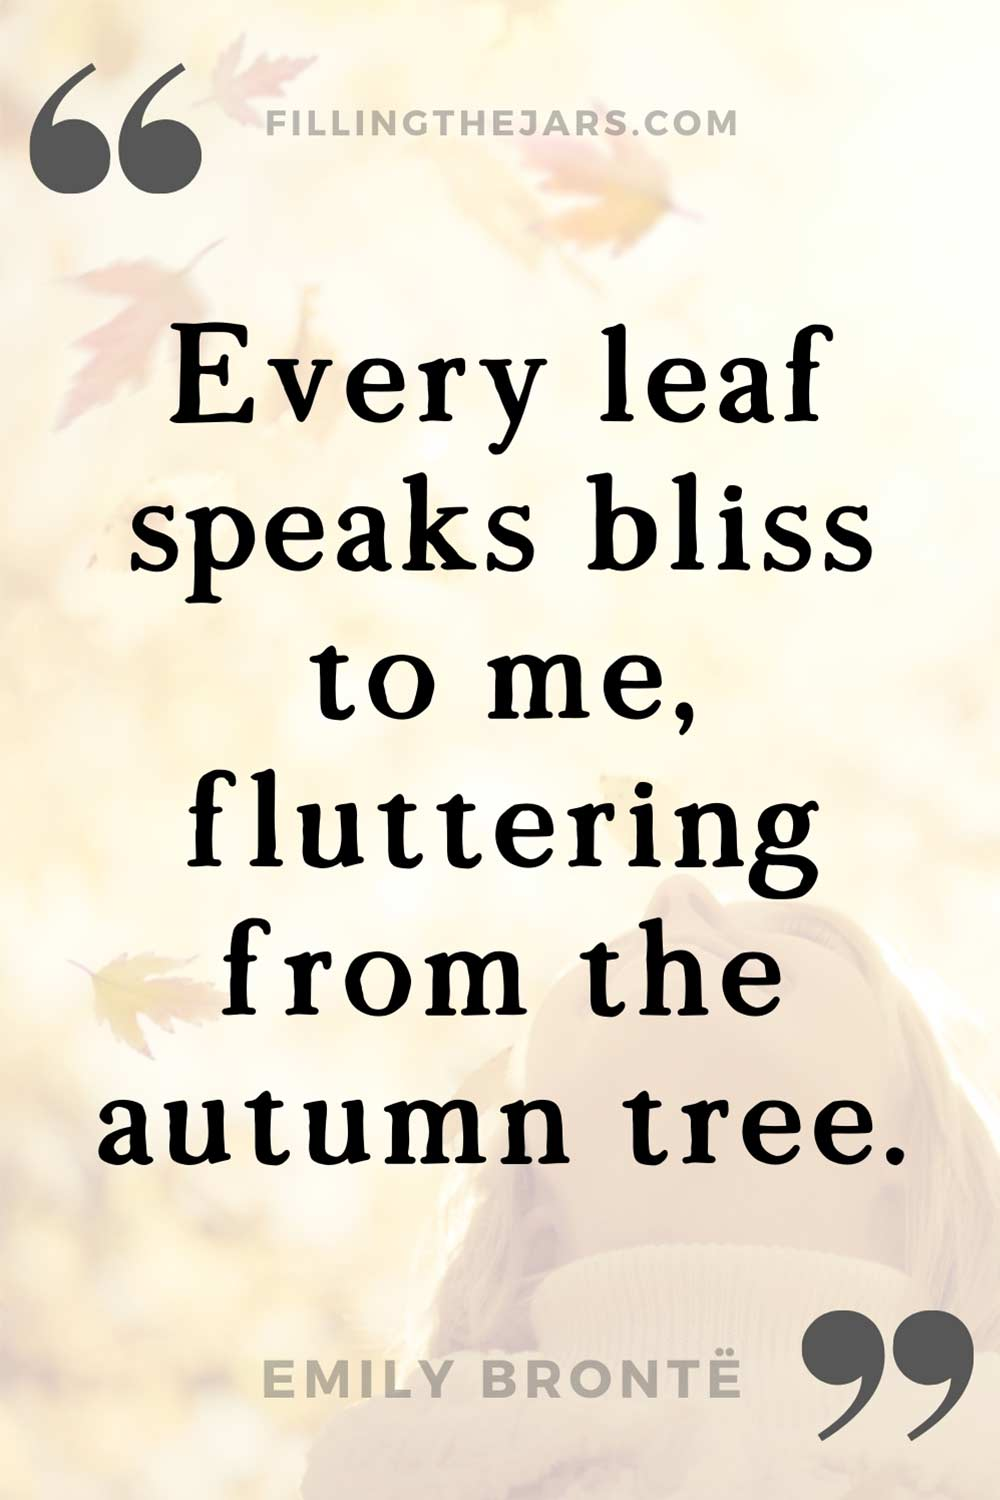 Emily Bronte every leaf speaks bliss quote in black text on faded image of woman smiling up at falling leaves on a sunny day.